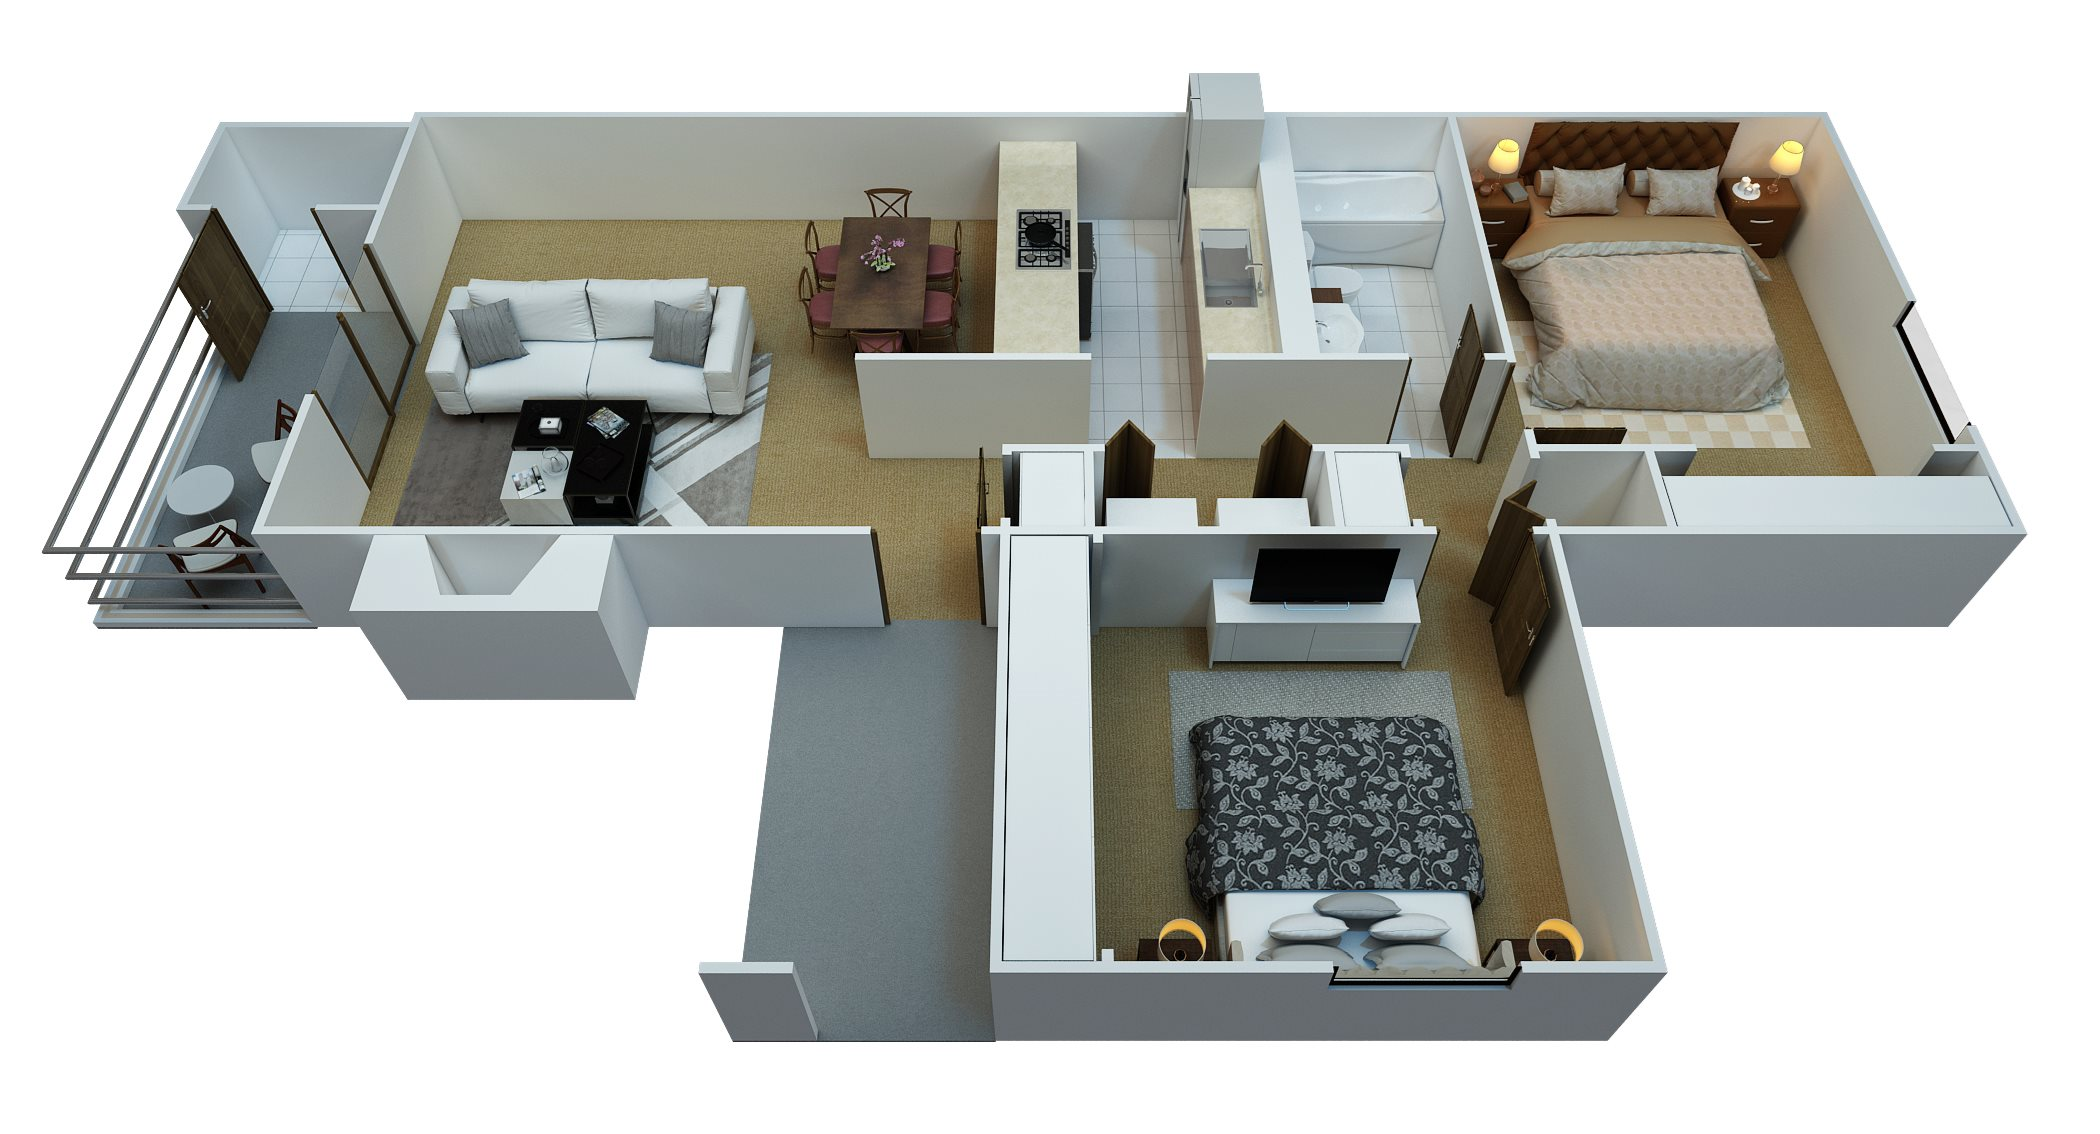 2 Bedroom, 1 Bathroom Floor Plan 3